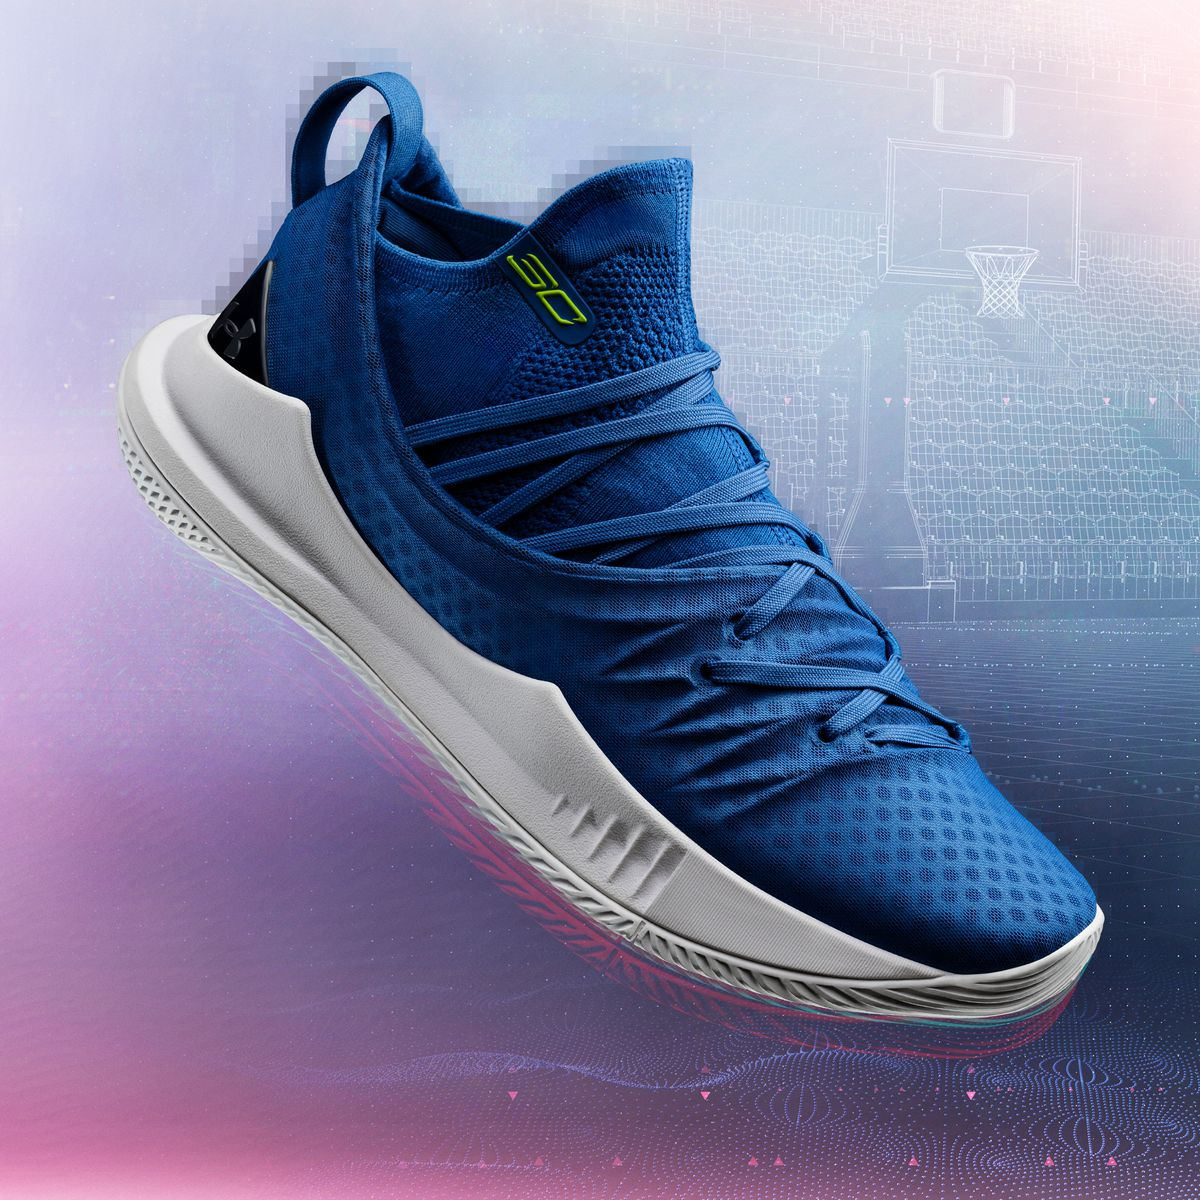 The New Under Armour Curry 5 Colorway Is A Nod To The